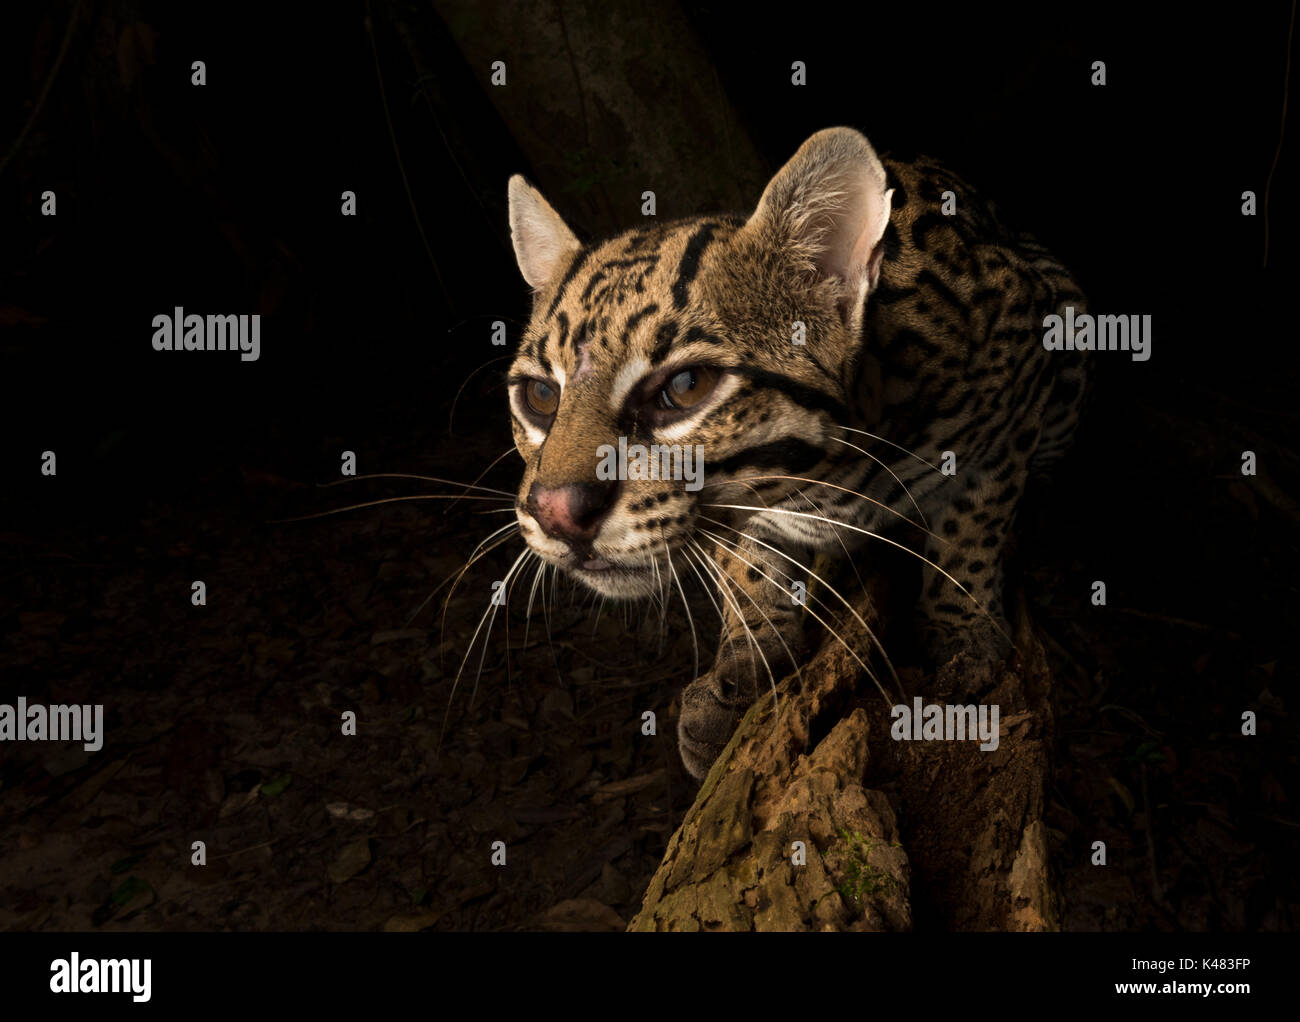 ocelot-portrait-with-a-wide-angle-remote